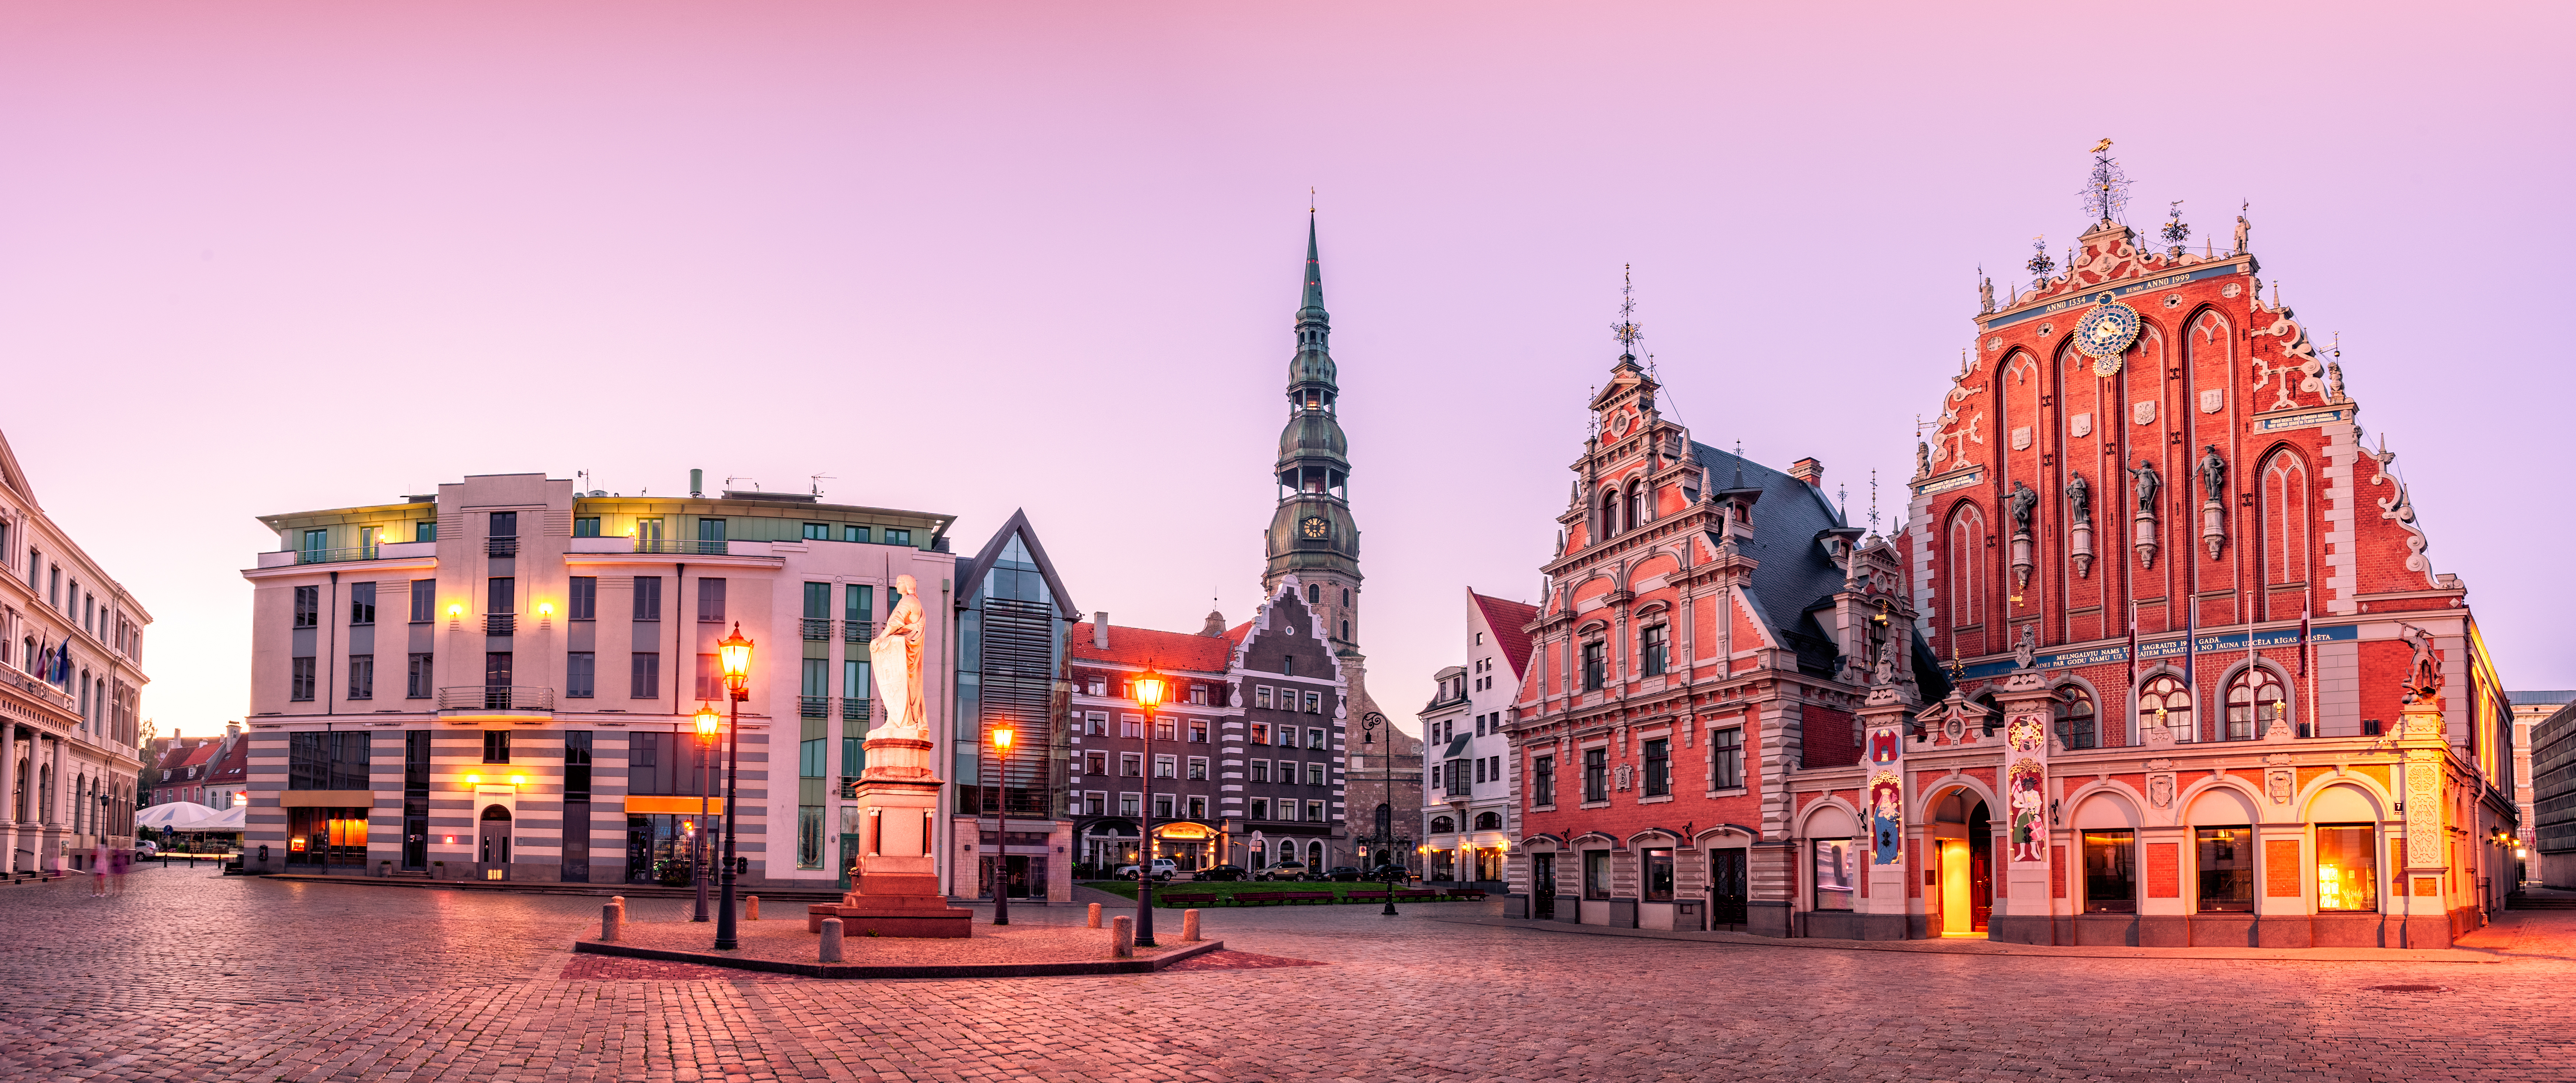 5 Things to do in Riga, Latvia - The Spotahome Blog